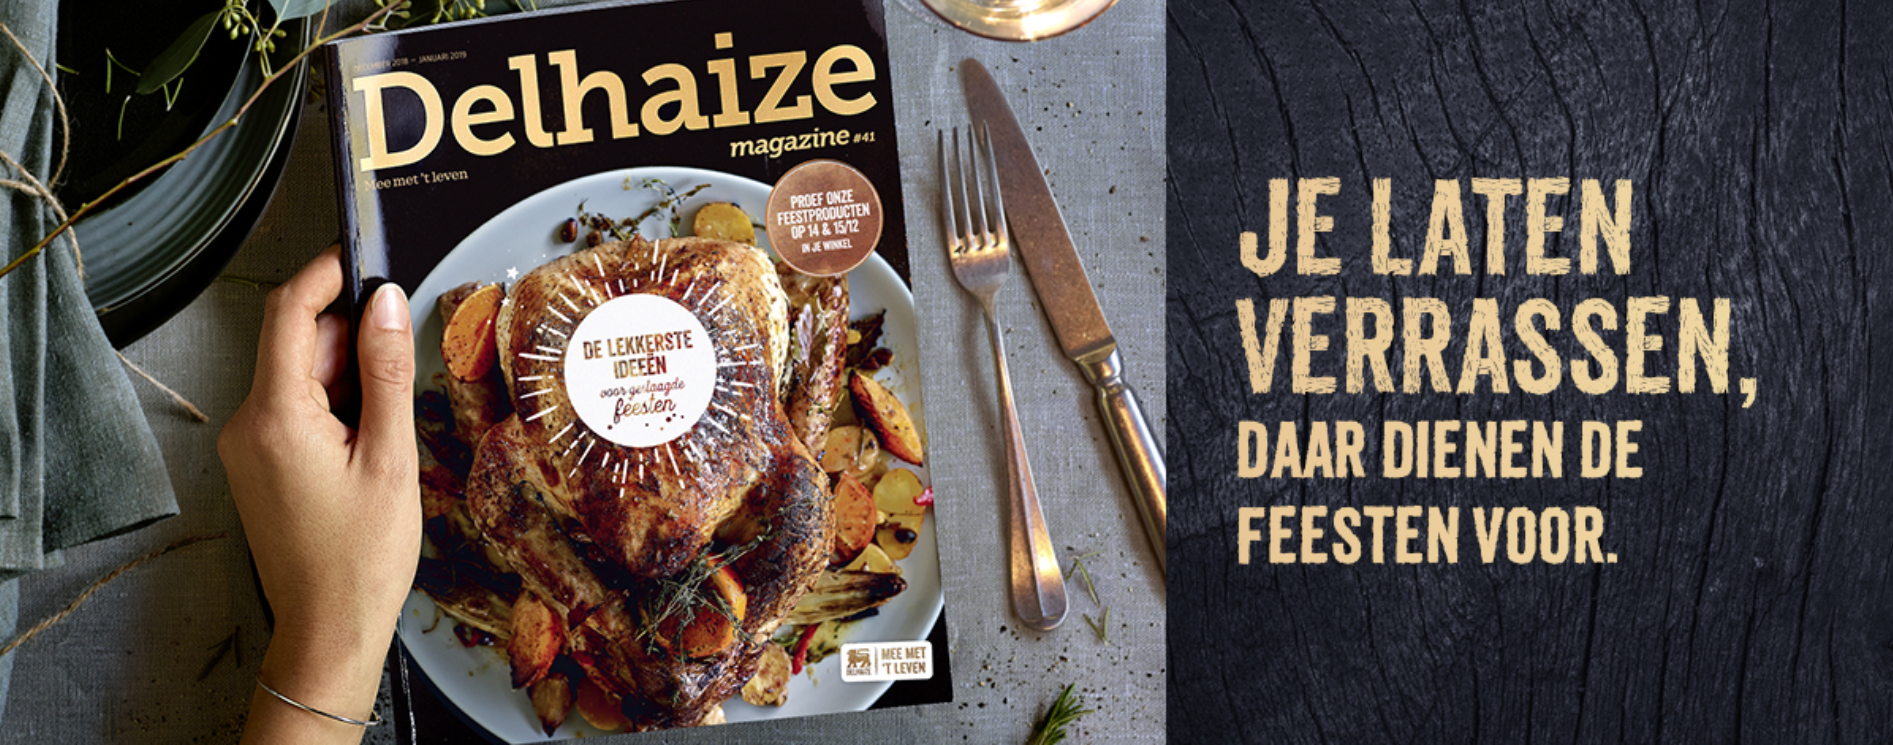 Dehaize feestmagazine - content marketing case